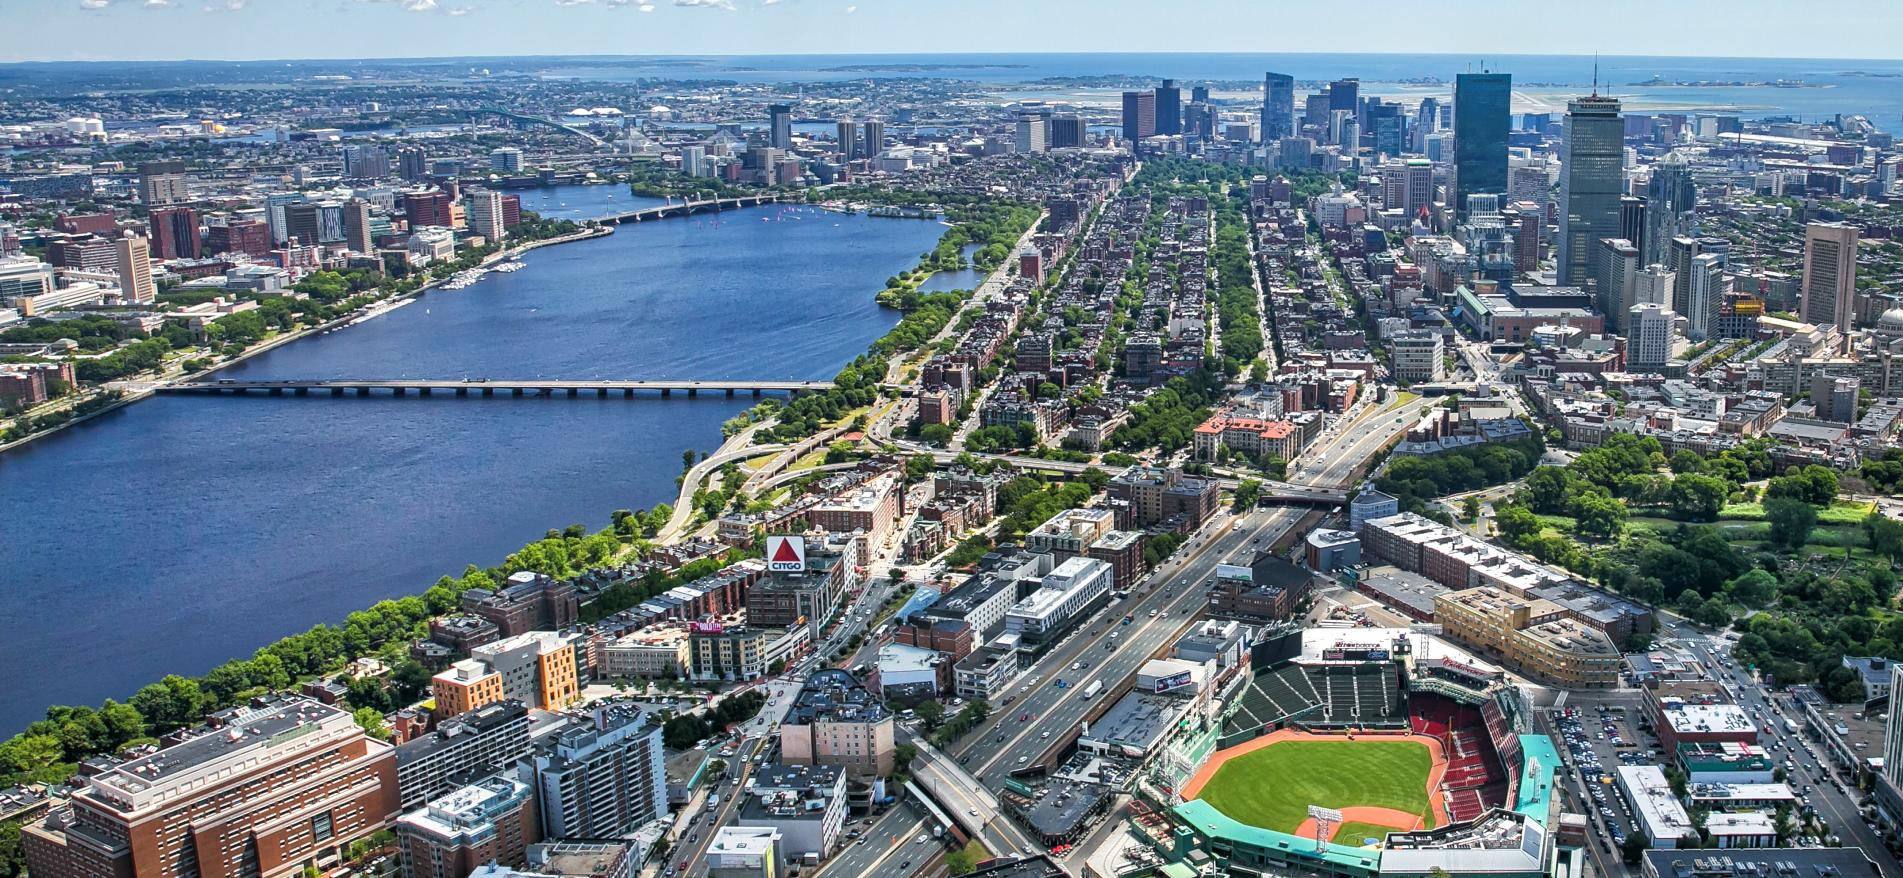 https://res.cloudinary.com/simpleview/image/upload/c_fill,f_auto,h_878,q_75,w_1903/v1/clients/boston/BostonAerails_KyleKlein_KKP12001_5c3e779e-3e93-4634-839c-b1ac087f7ece.jpg